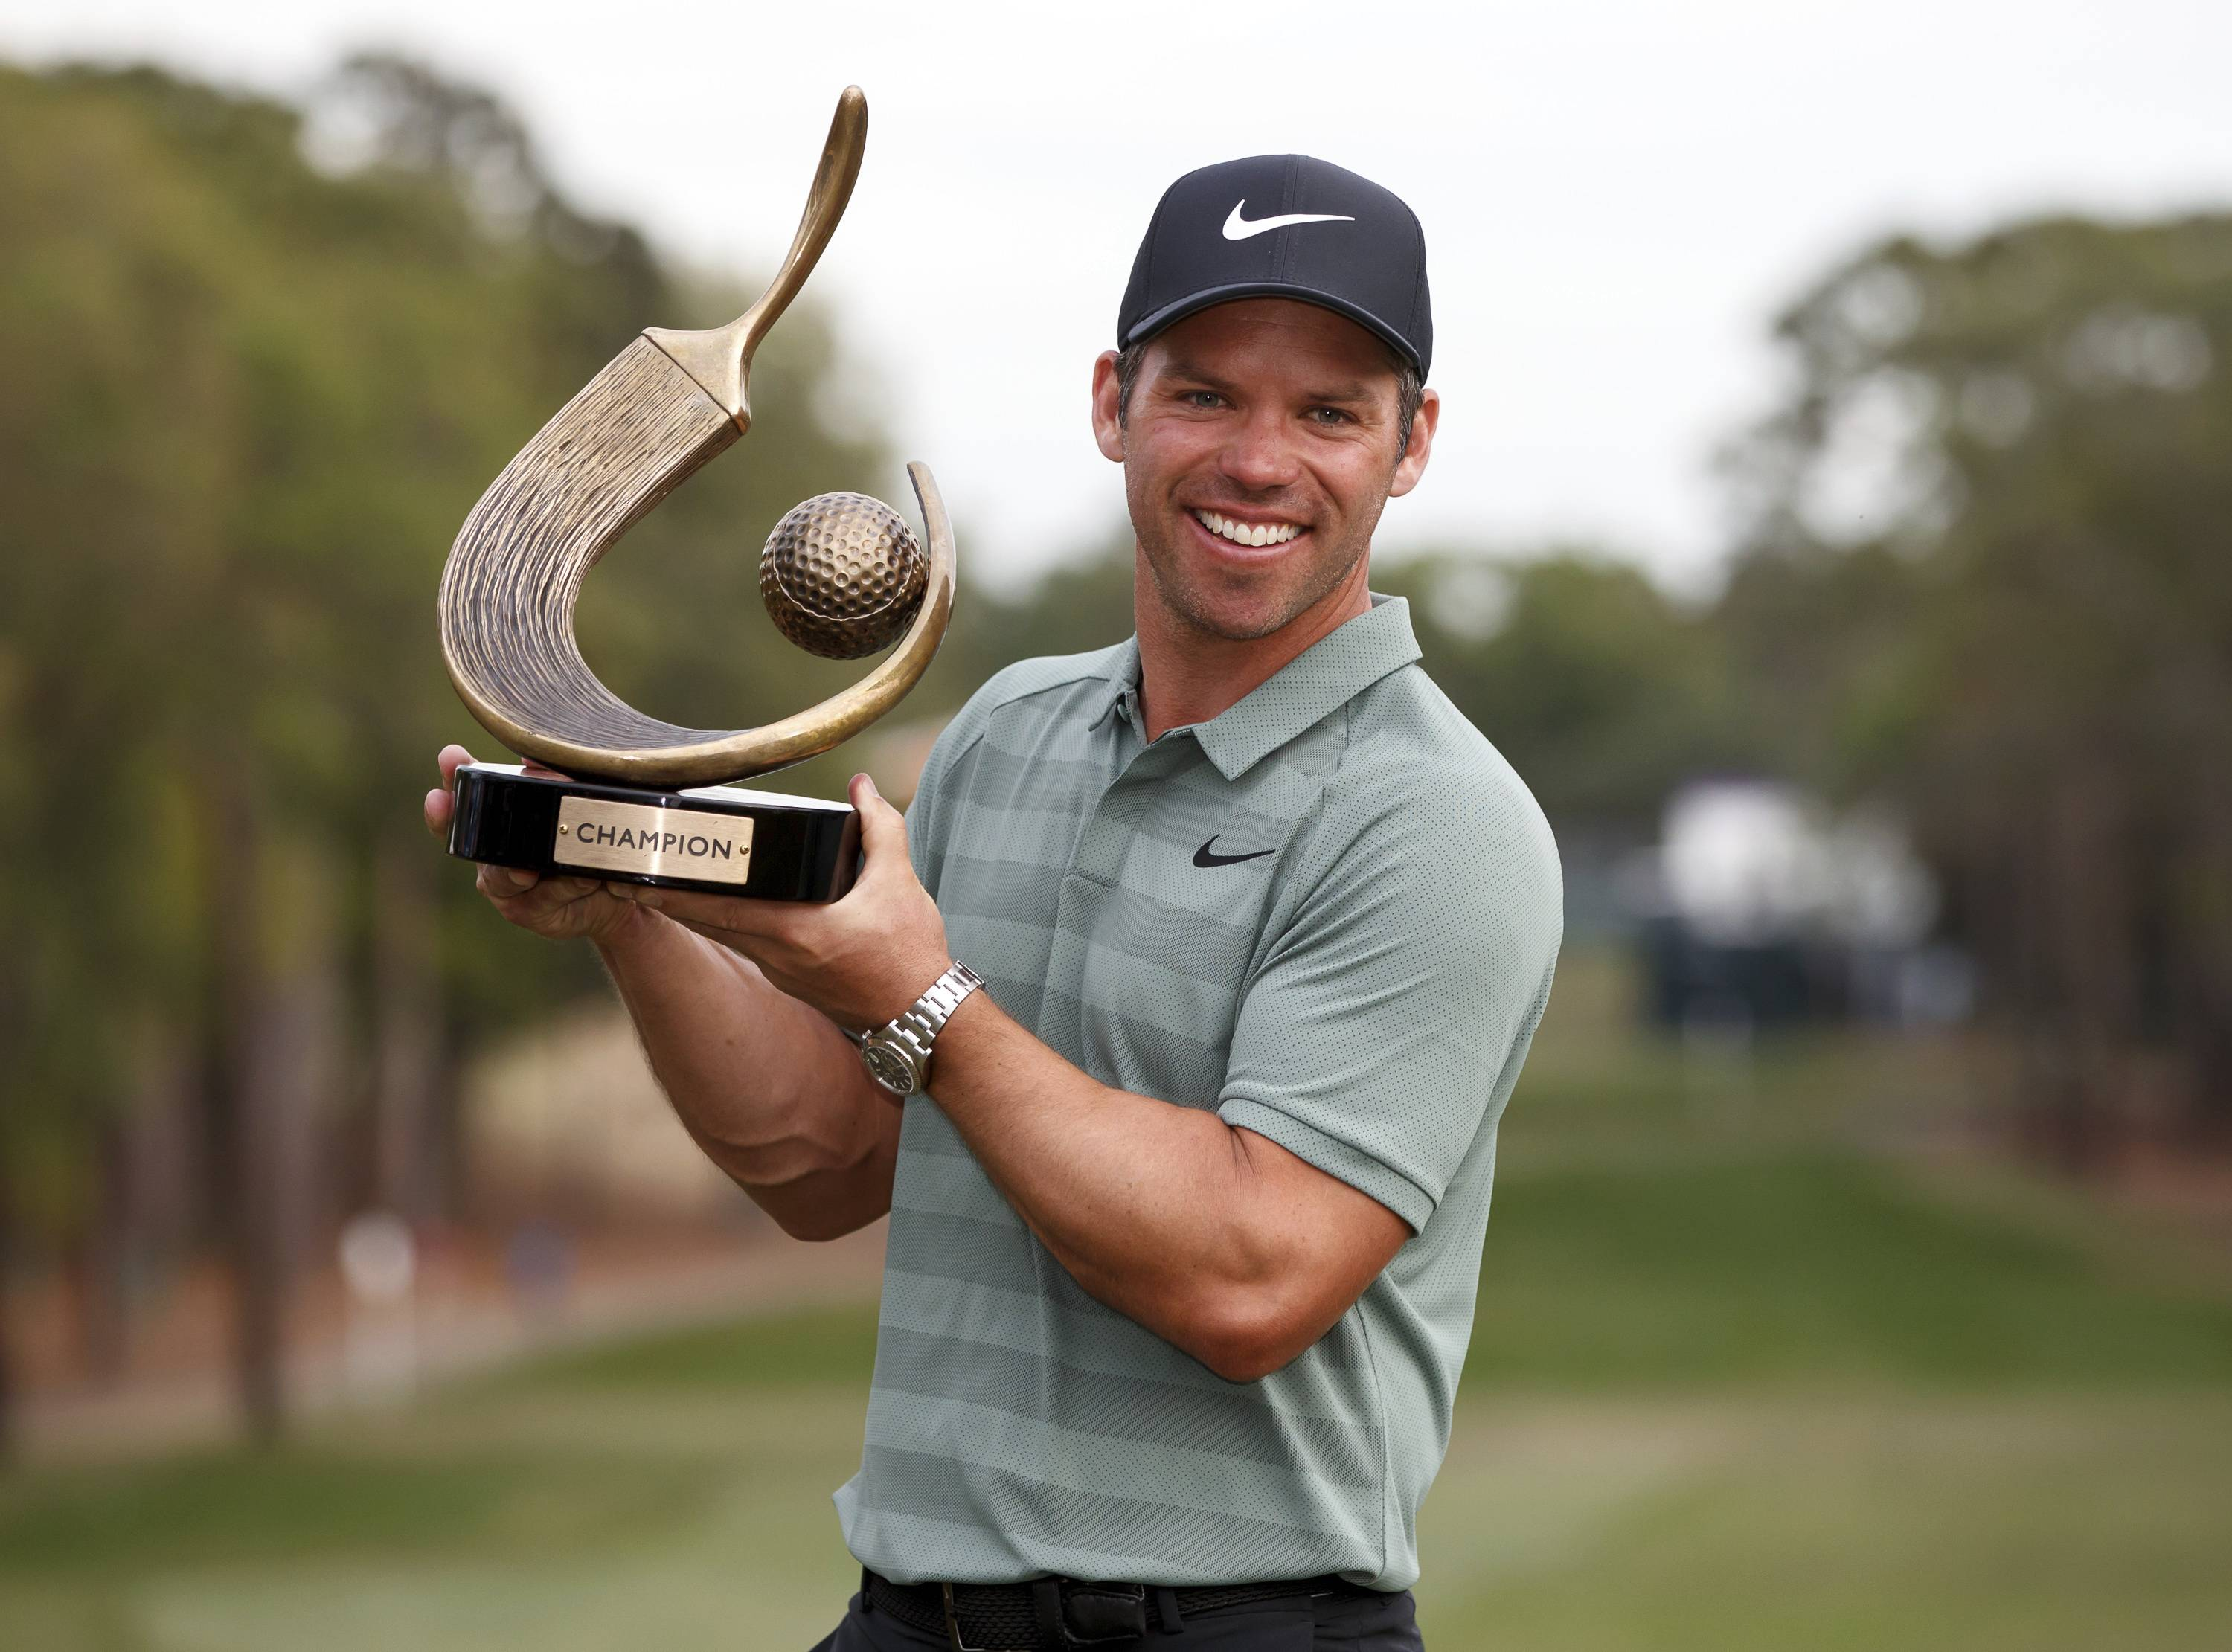 Paul Casey with Valspar trophy